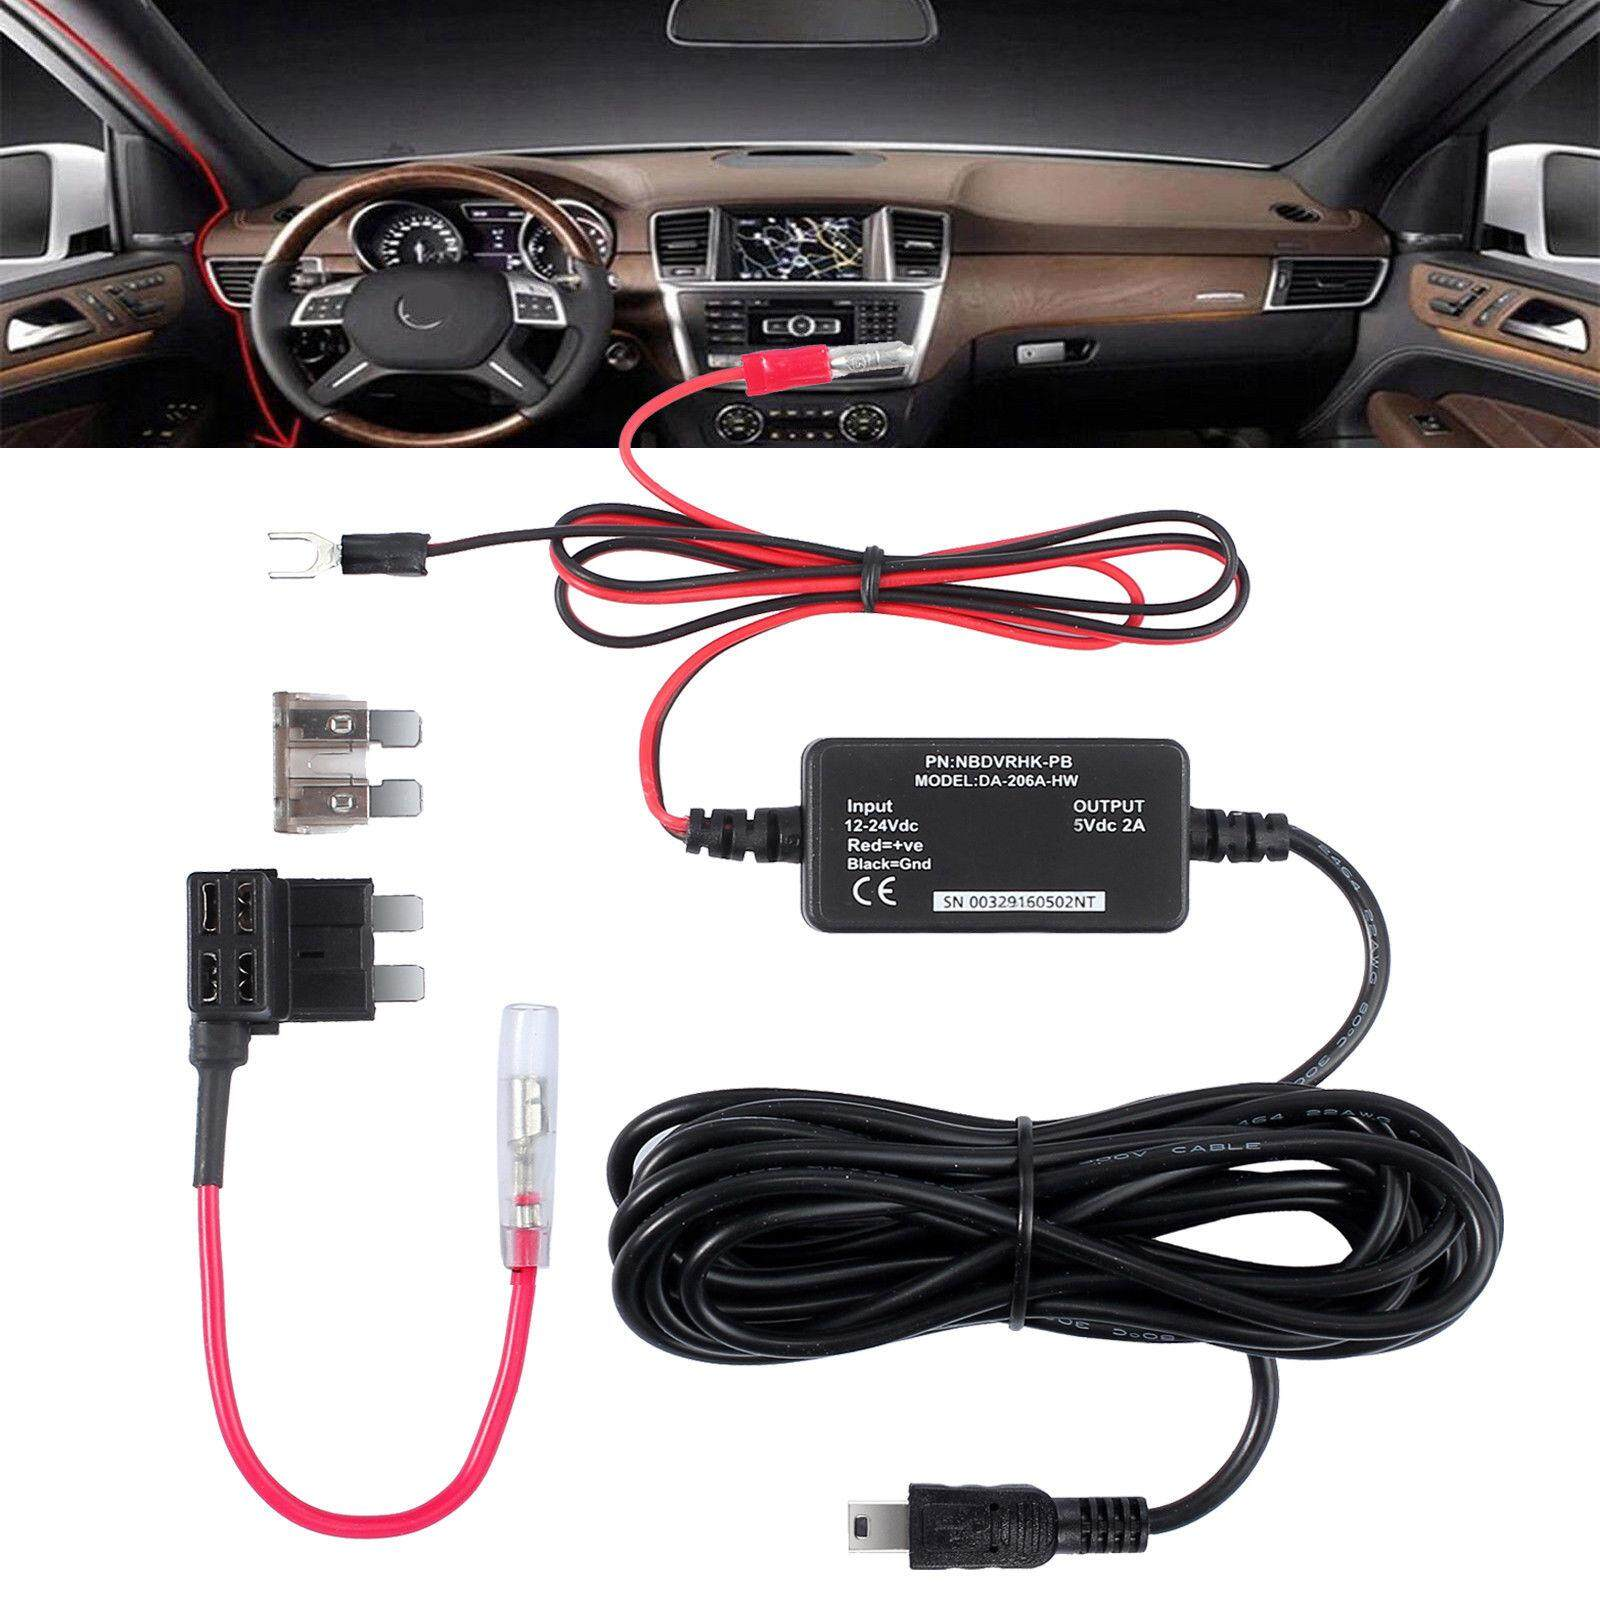 1*hard wire kit for car camera